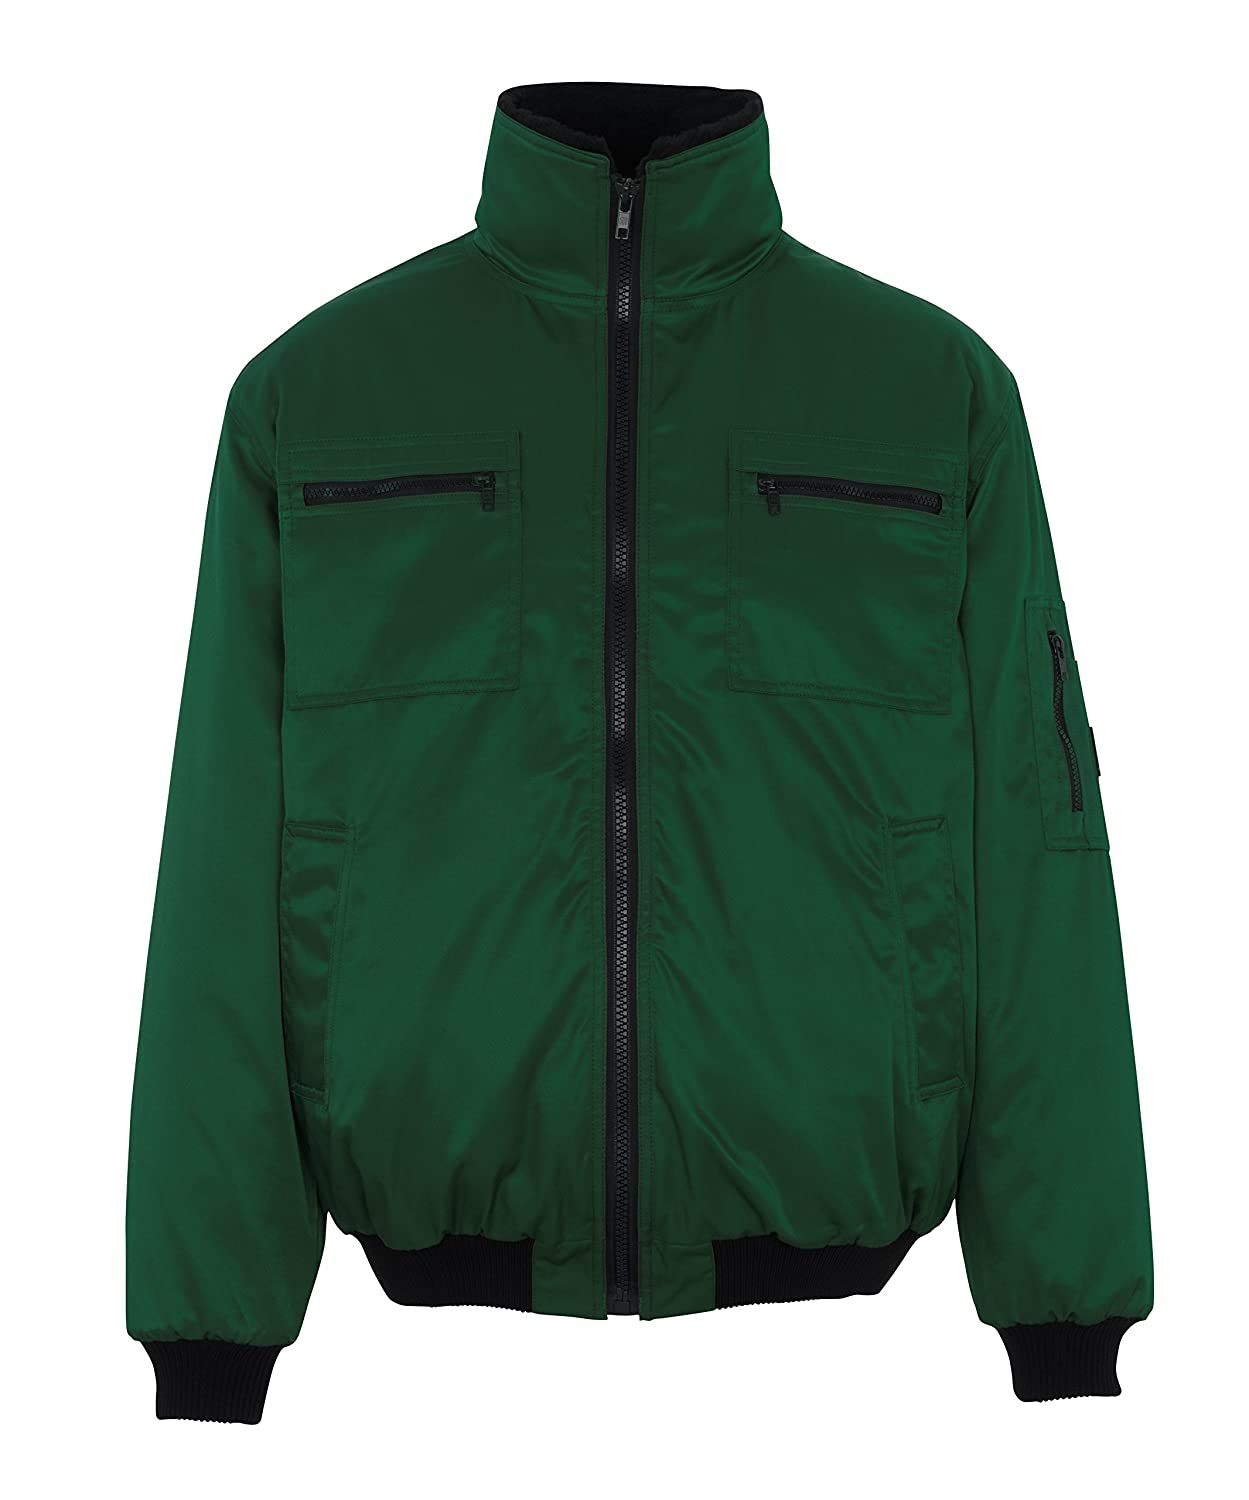 Medium Green Mascot 00516-620-03-MAlaska Pilot Jacket